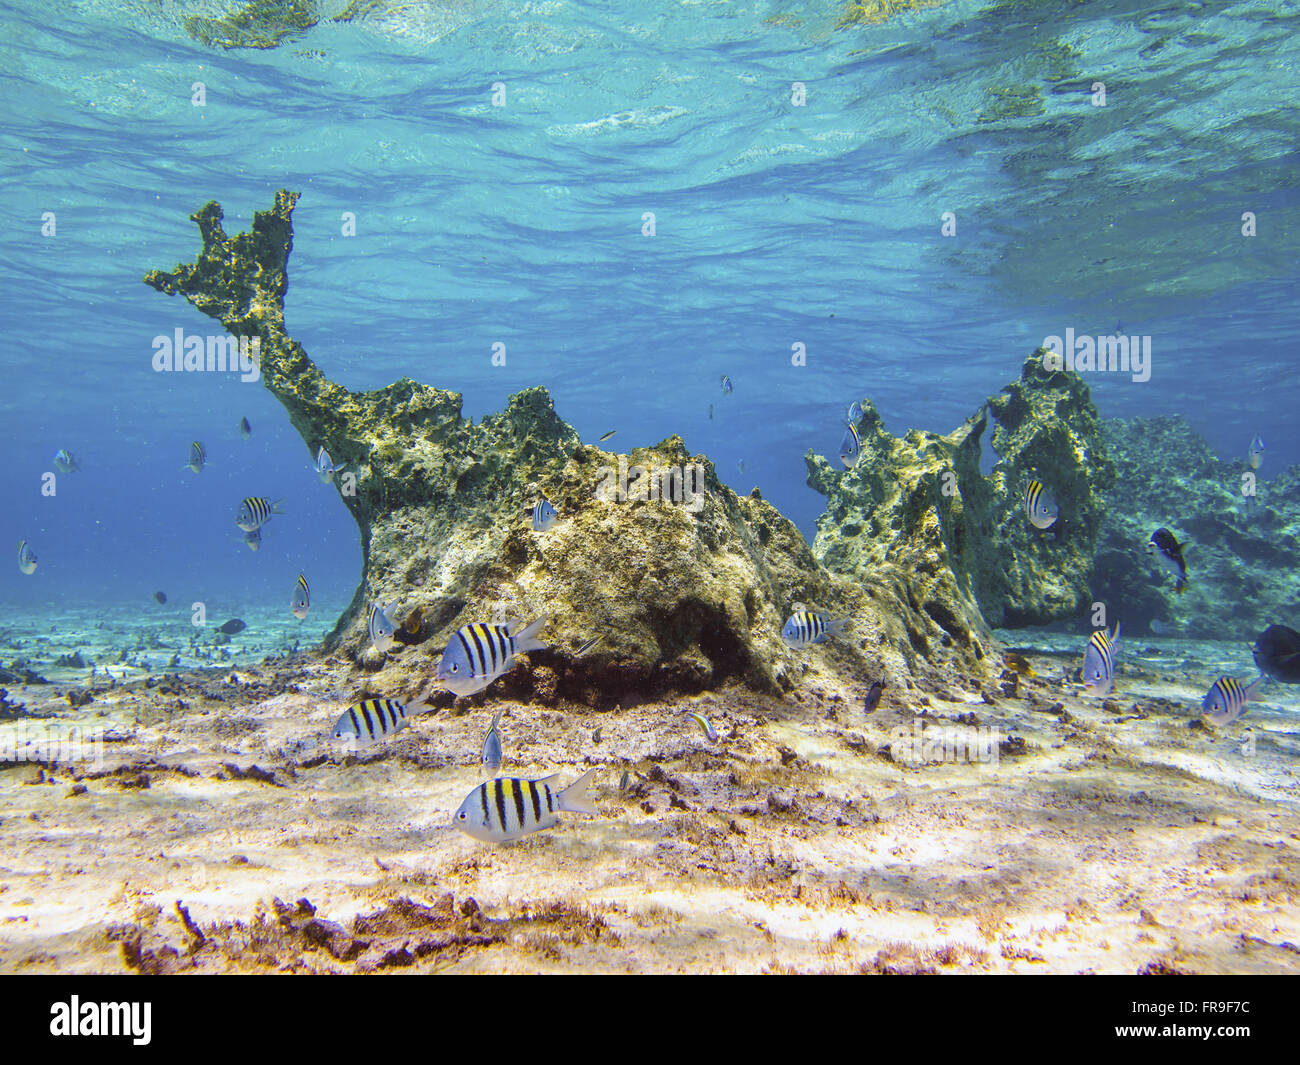 Coral formations in the Biological Reserve of Atol das Rocas Stock Photo